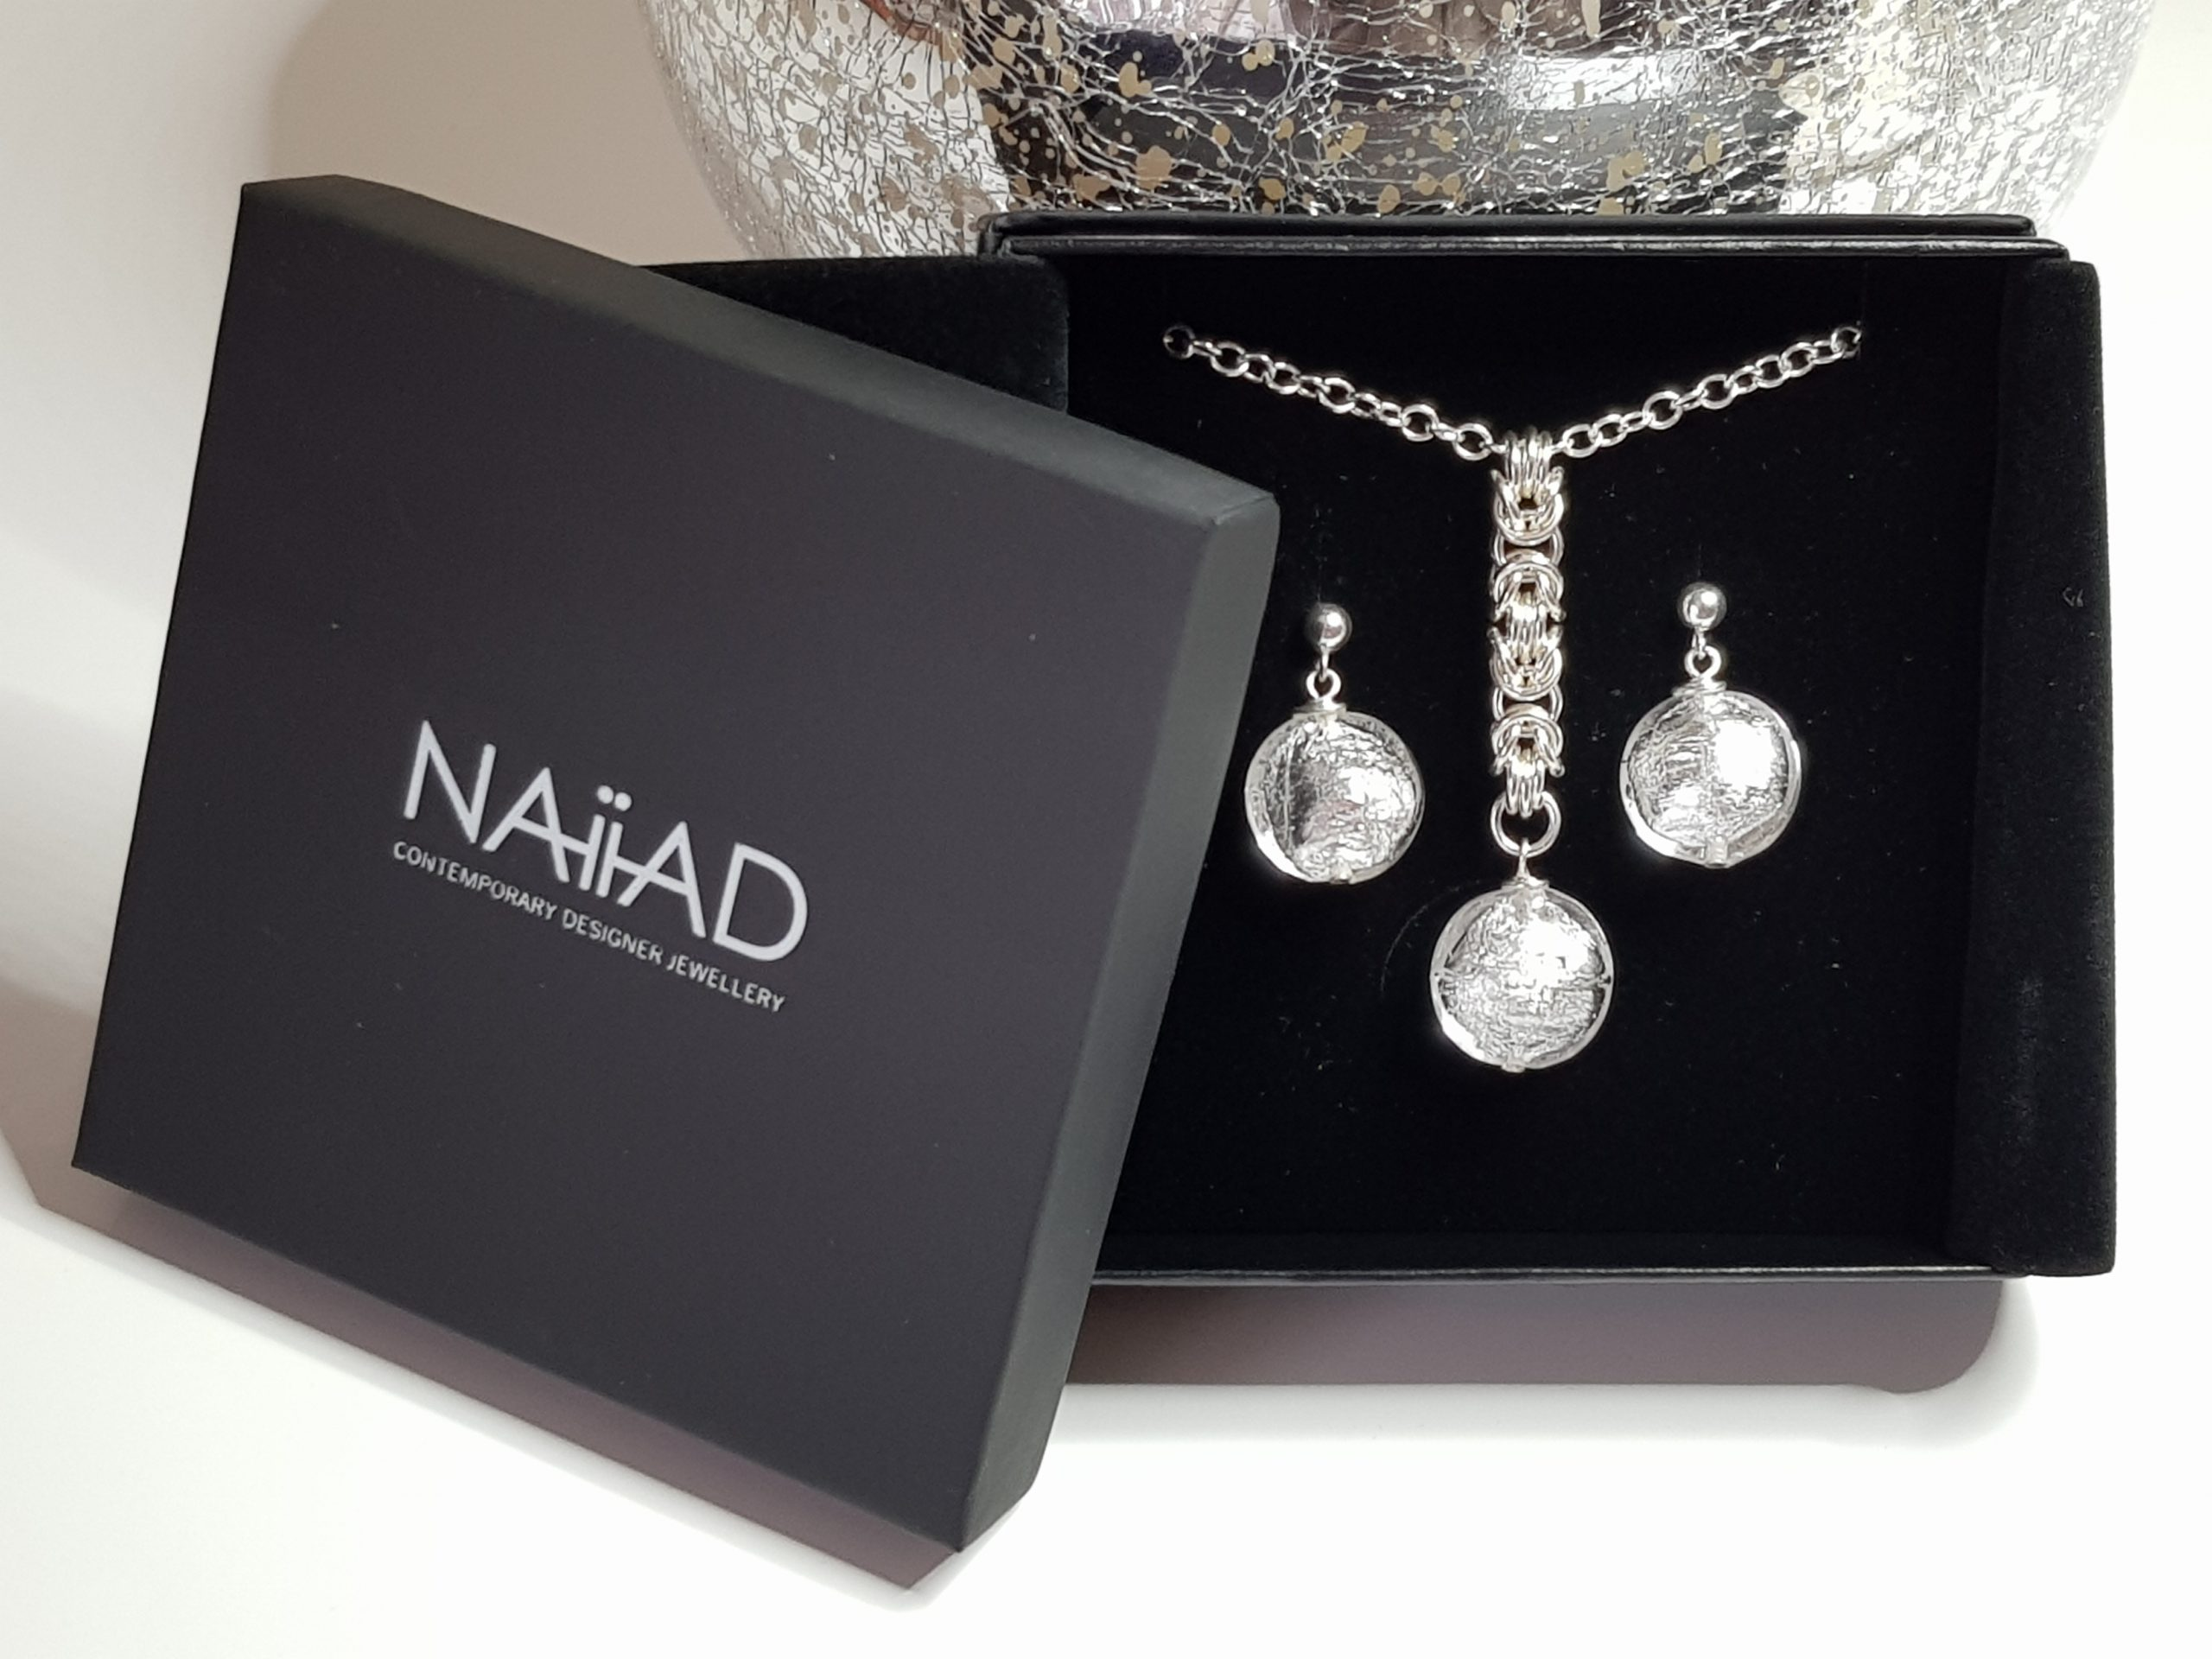 NAIIAD handmade Sterling silver Byzantine chainmail and silver foil Murano glass necklace and earrings gift set